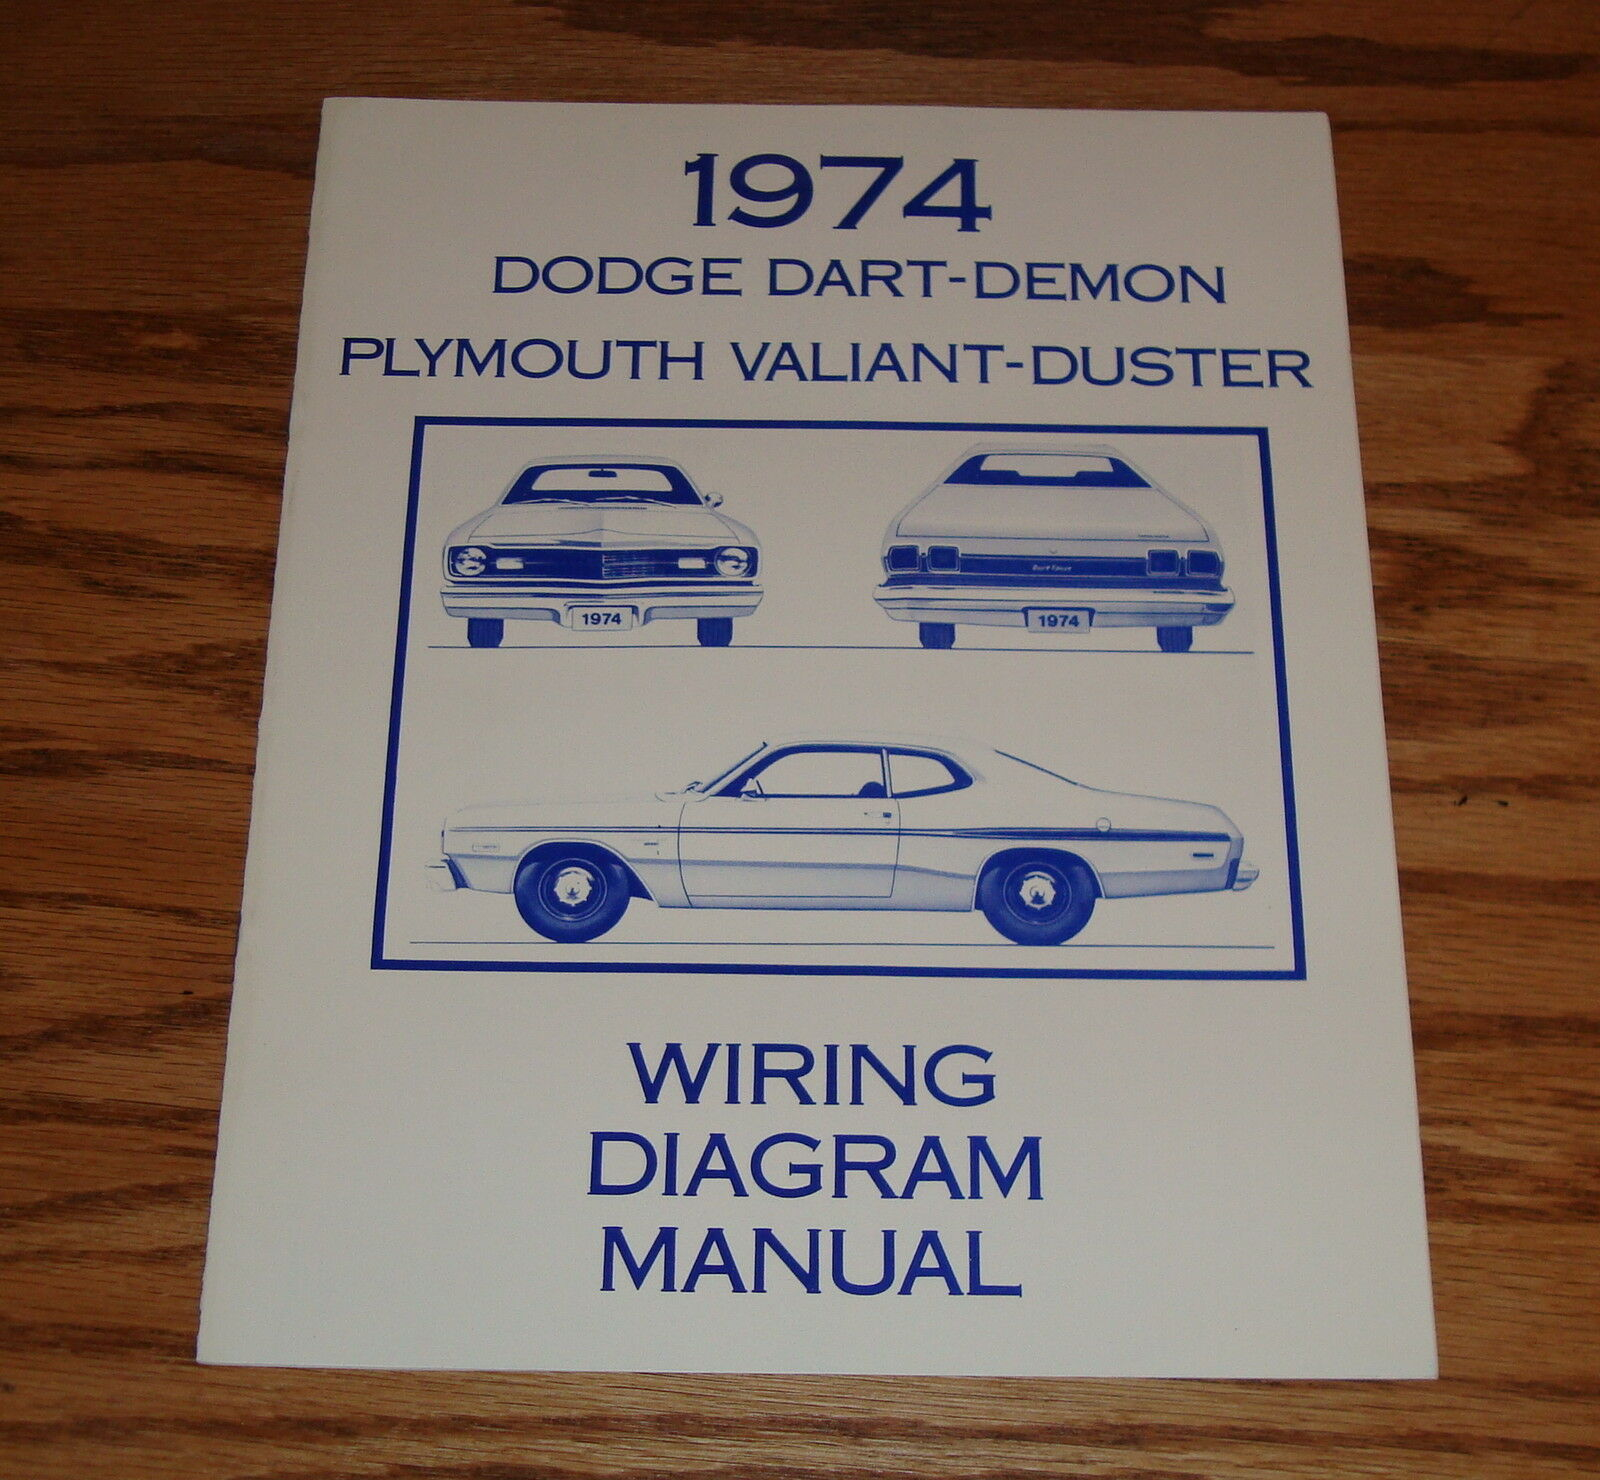 1974 Dodge Dart Demon Plymouth Valiant Duster Wiring Diagram Manual 2014 74 1 Of 1only Available